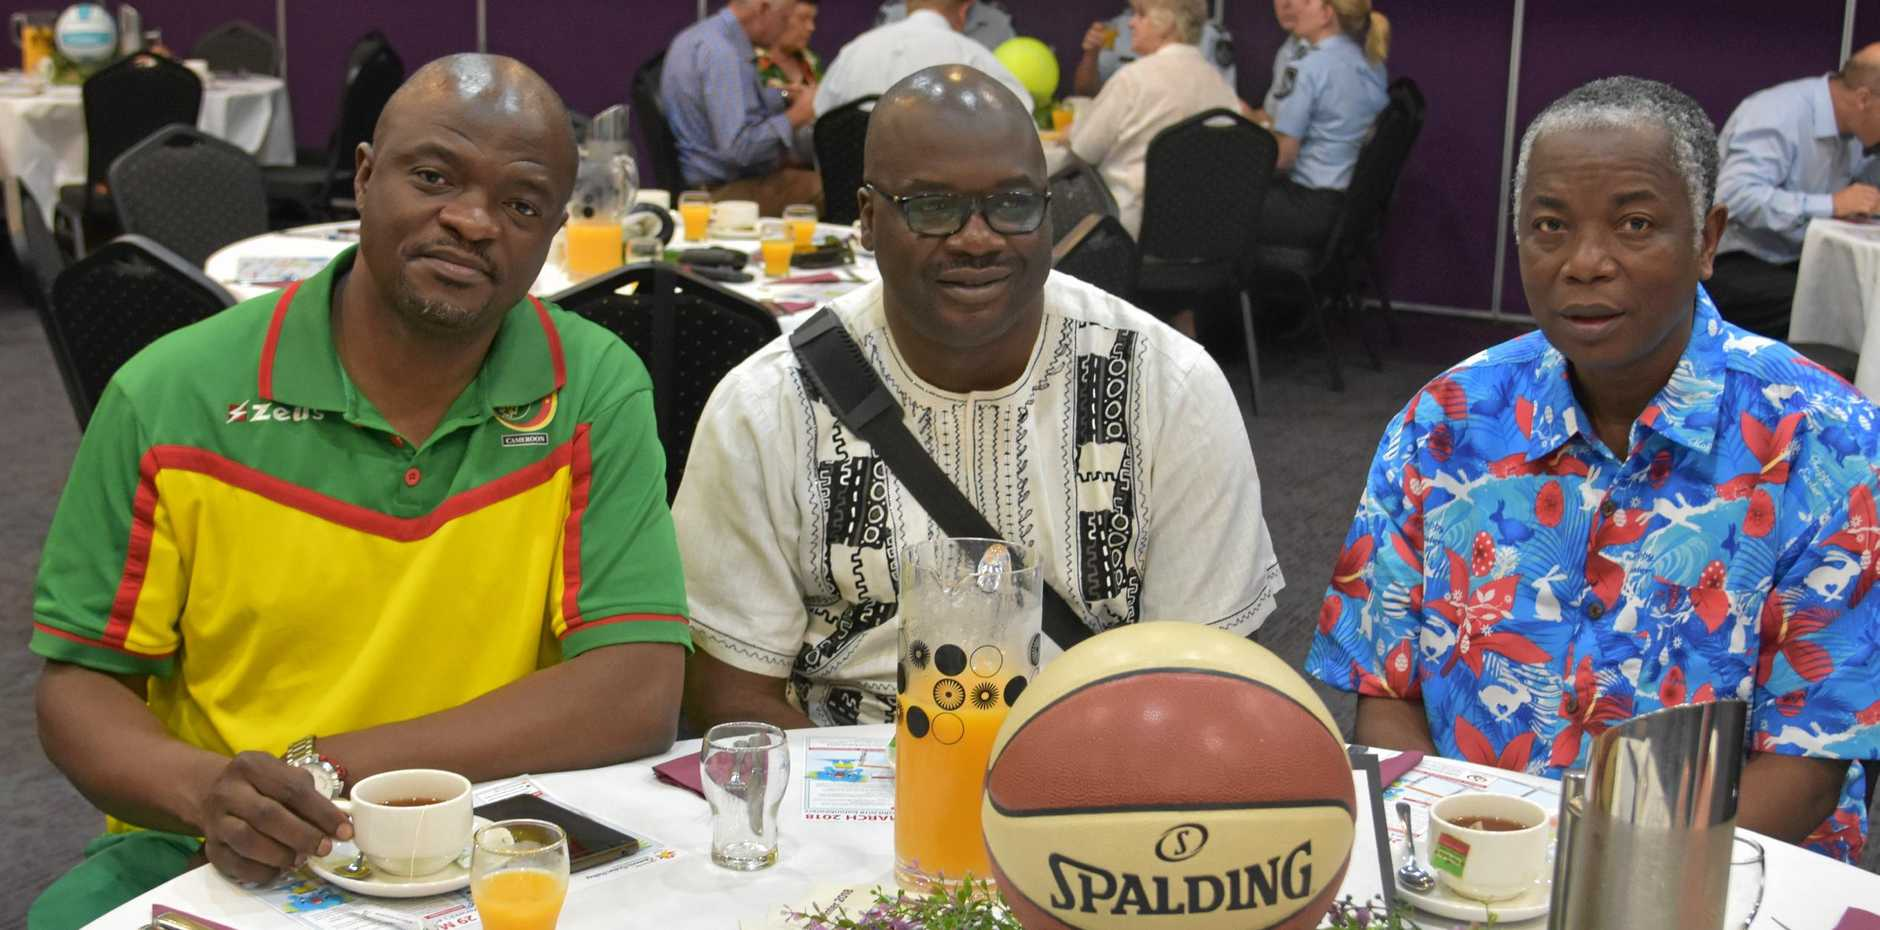 STUMPED: Cameroon representatives Yves Vincent Mpenekoul, Eric W. Binfon and Alphonse Benoit Essama visited Warwick last month with the Commonwealth Games team but are not among those who have fled.